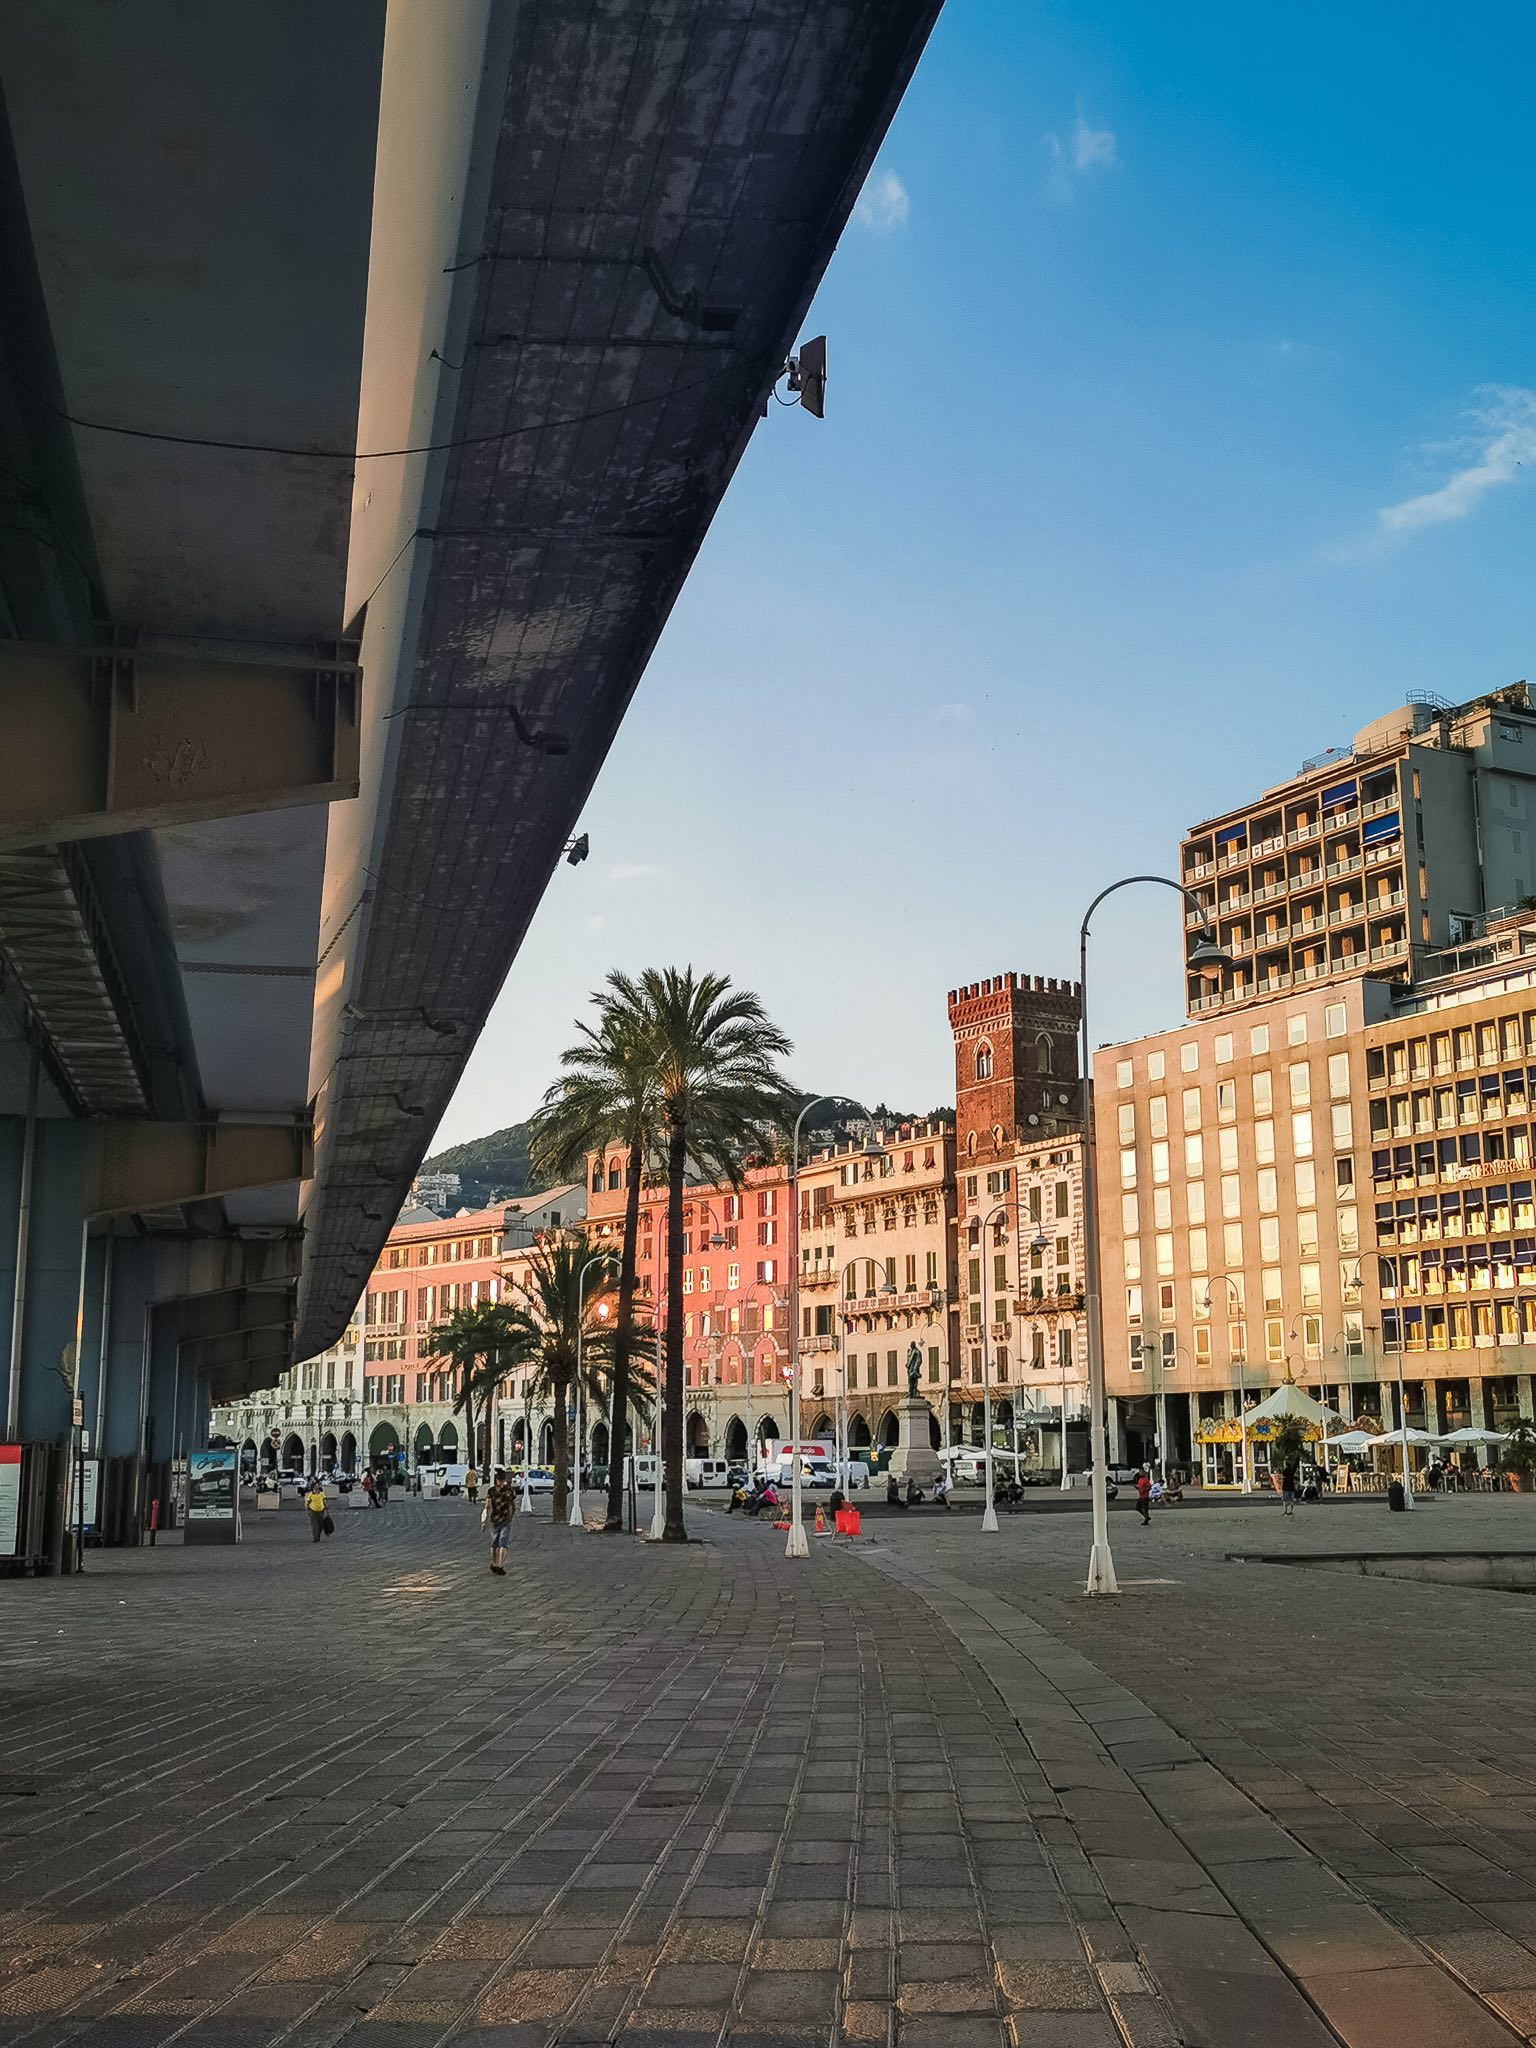 The overpass rising over the ancient port of Genoa